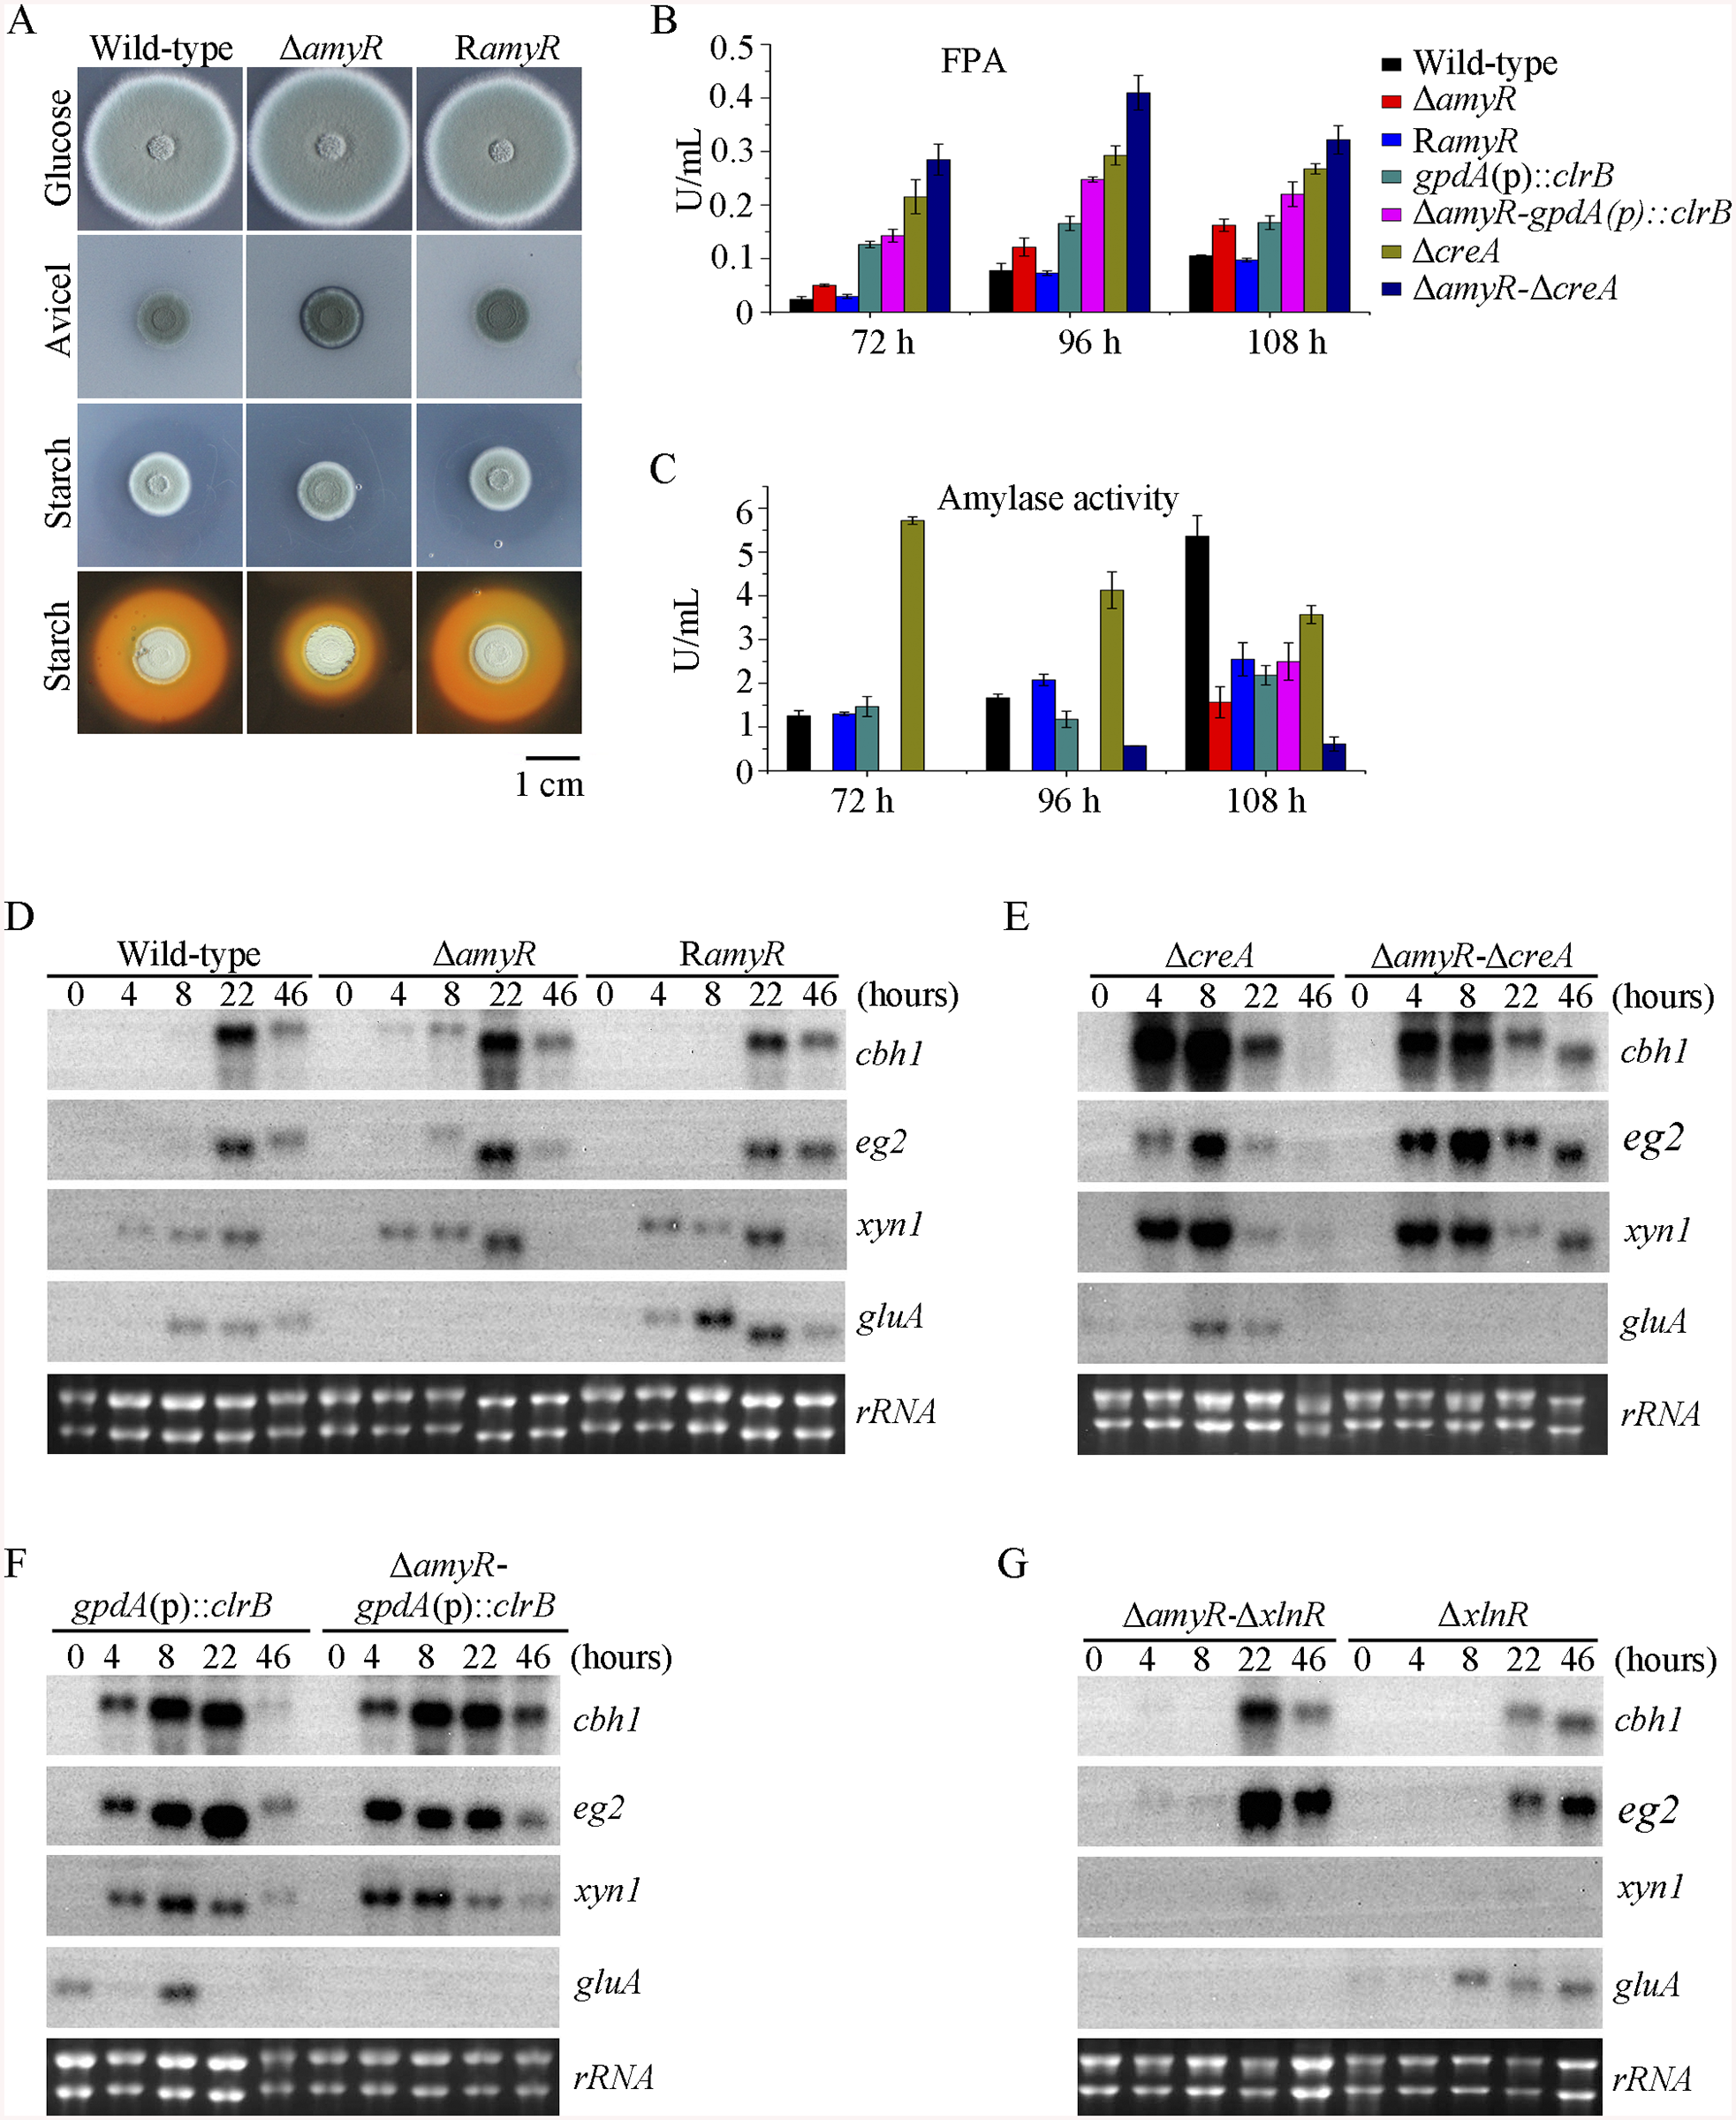 Lack of AmyR decreased amylase activity and increased cellulase expression on cellulose.